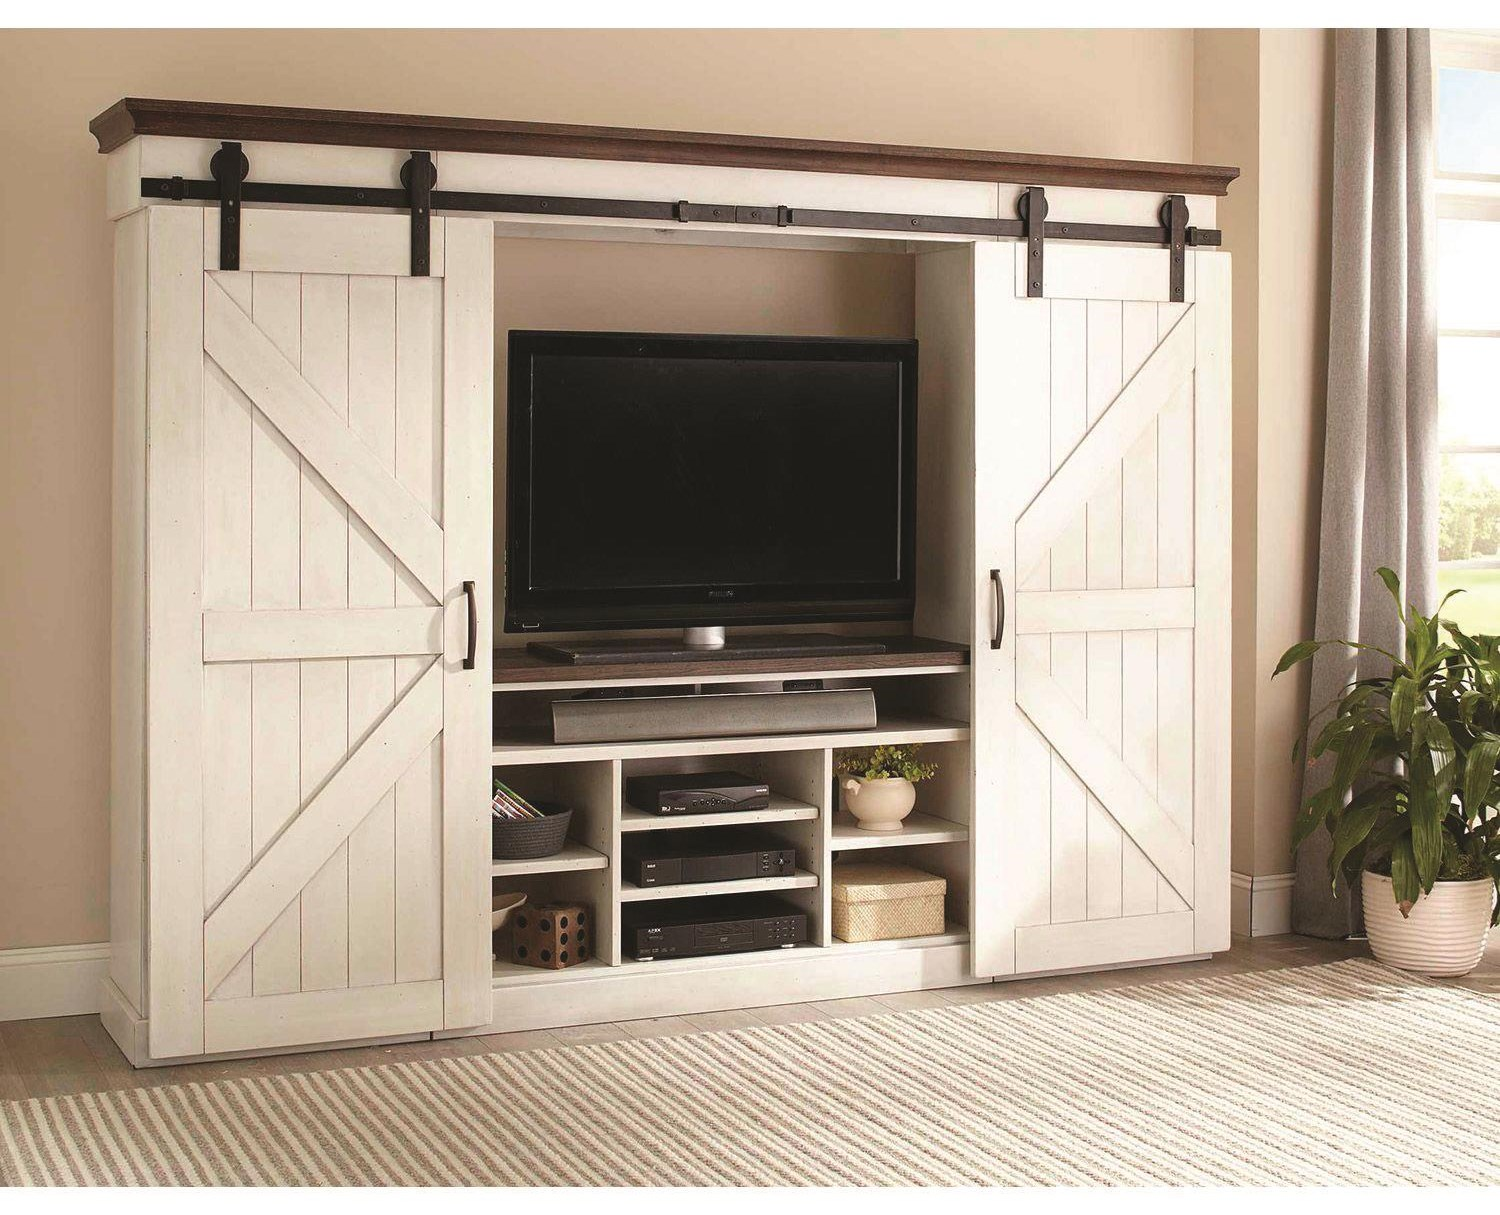 Country View Country View Entertainment Center by Sunny Designs at Morris Home